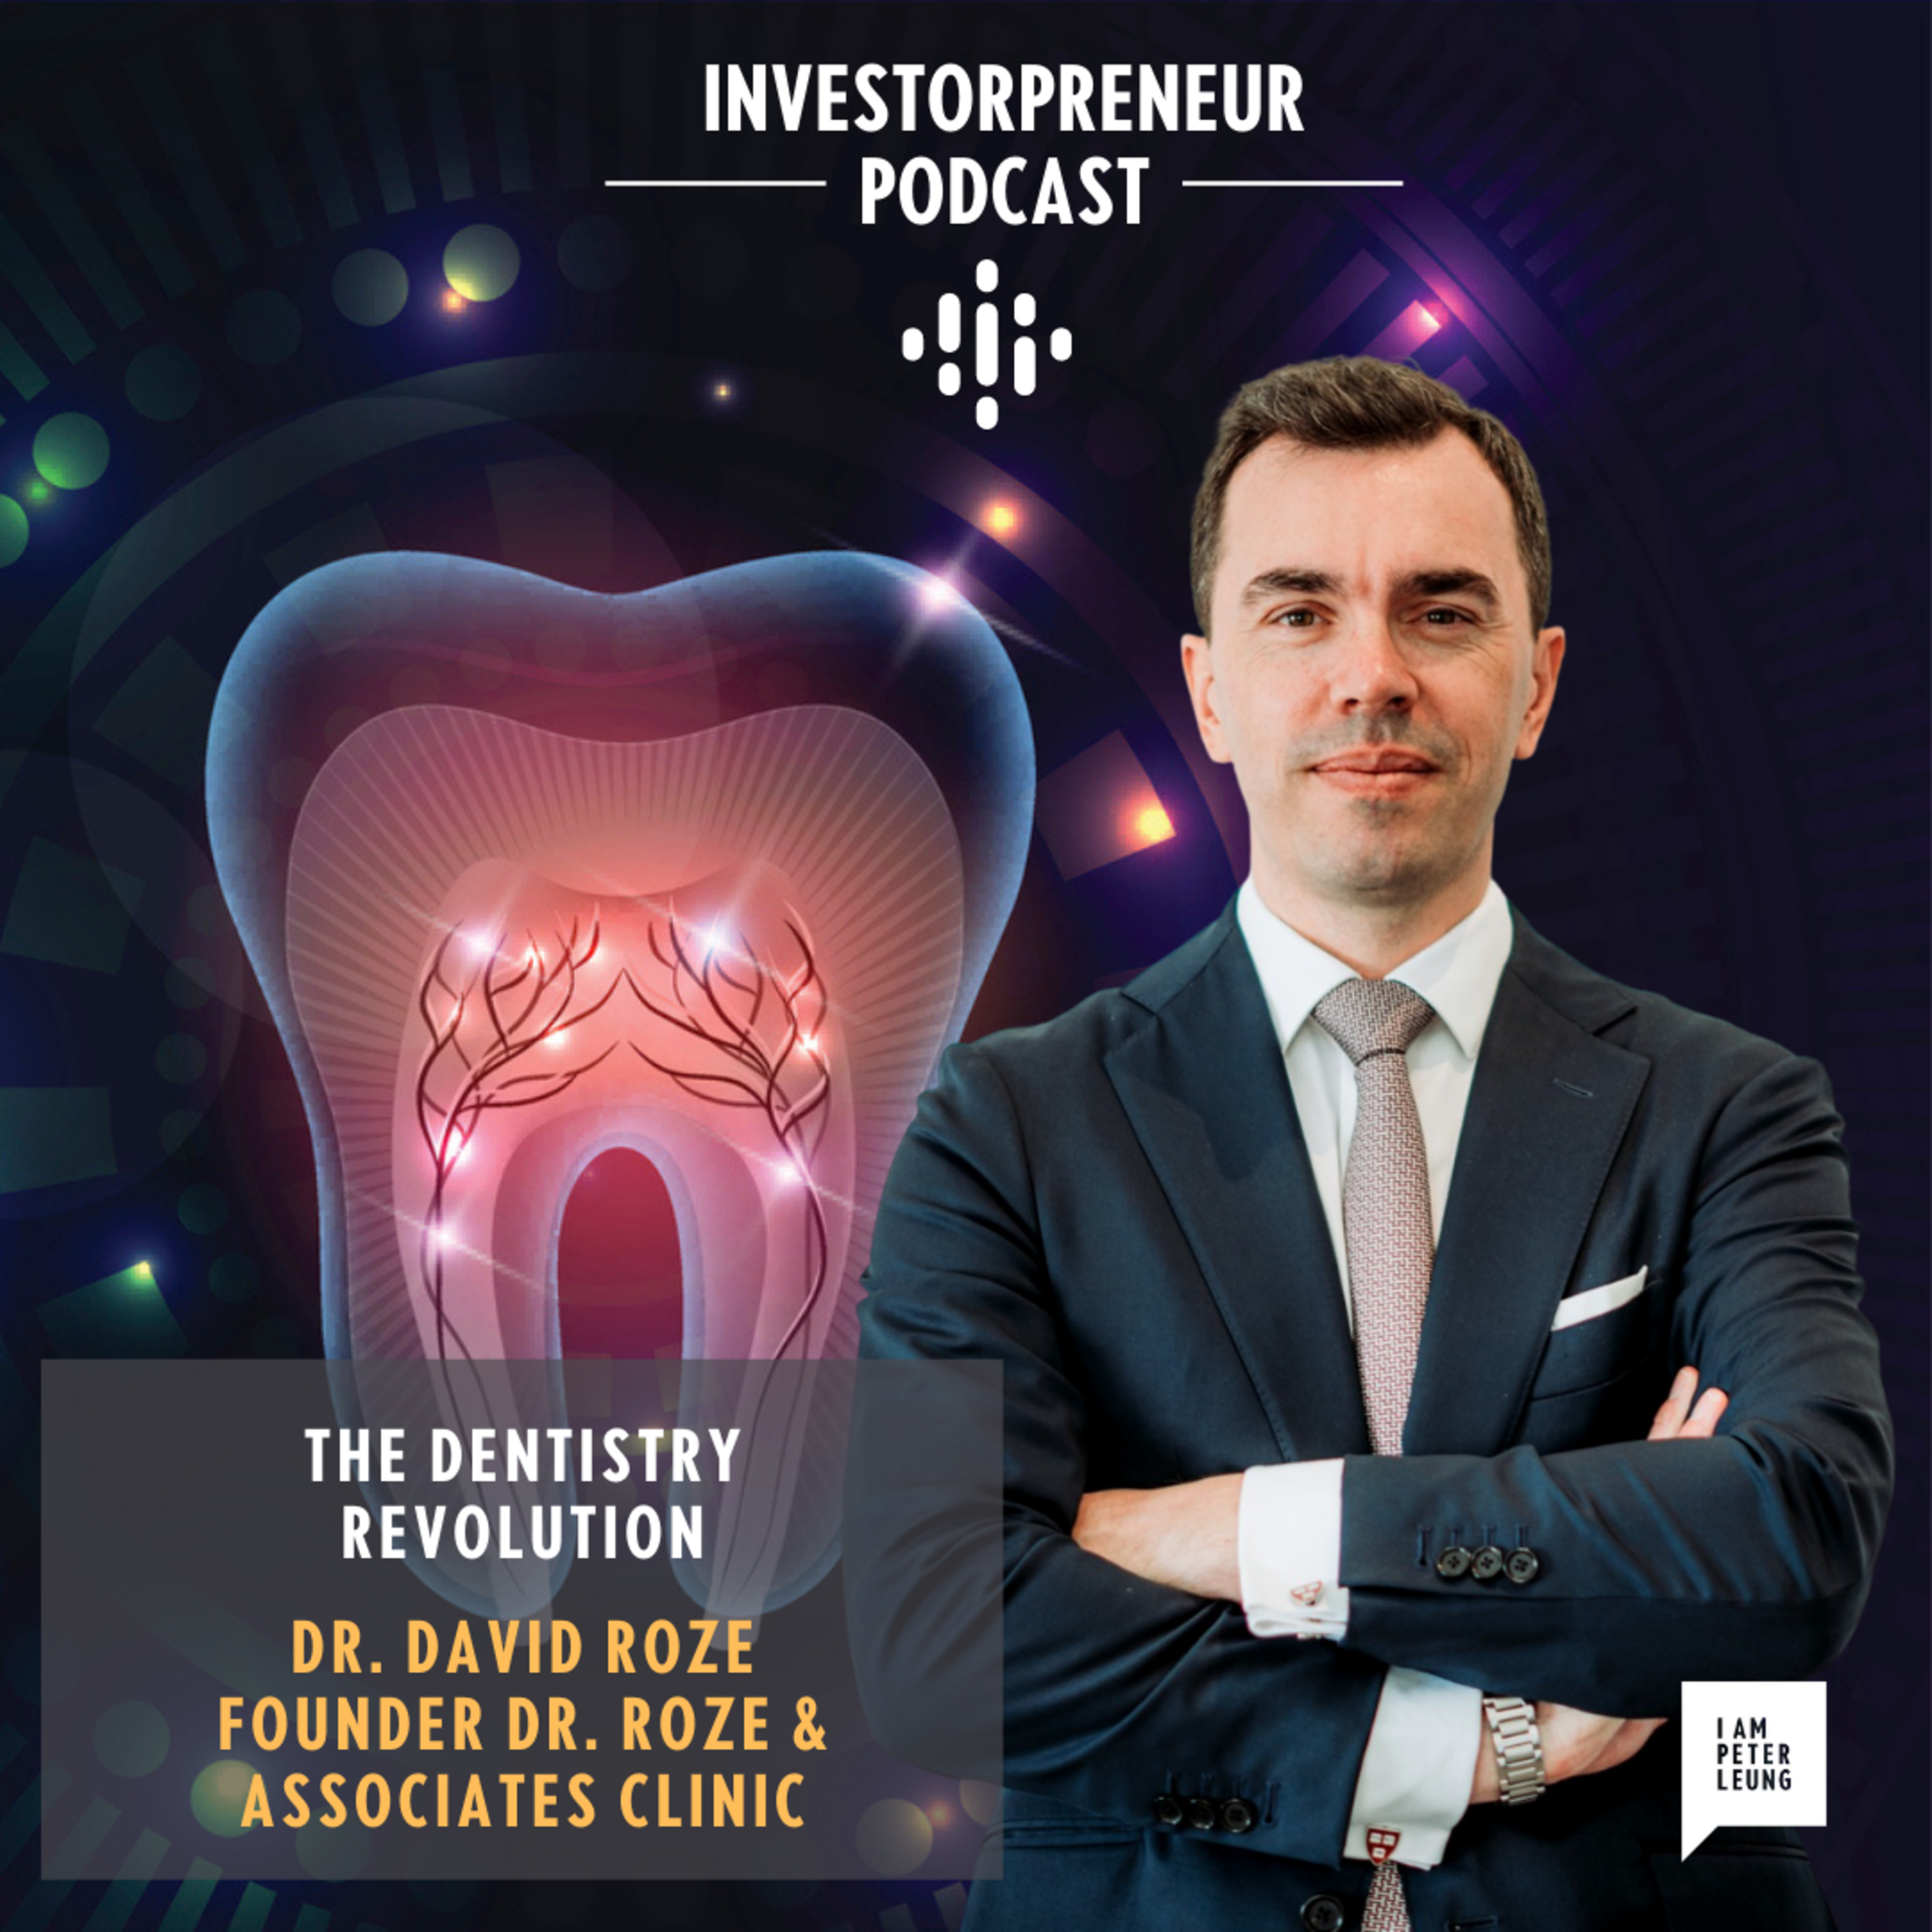 The Dentistry Revolution feat. Dr.David Roze